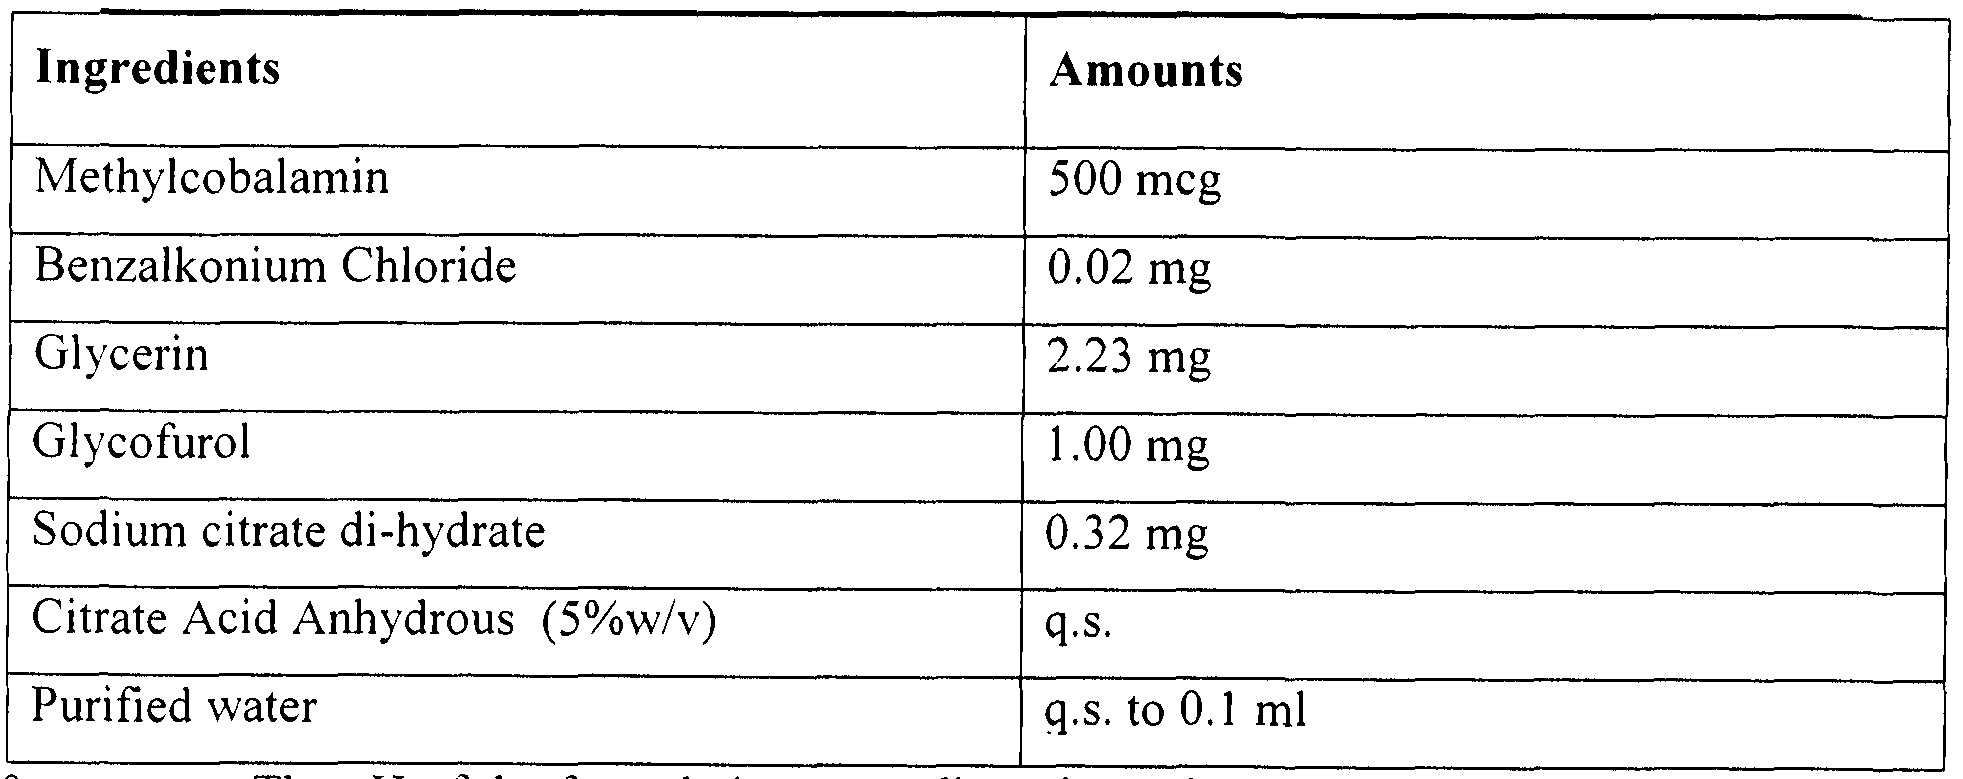 is sodium glycocholate a steroid